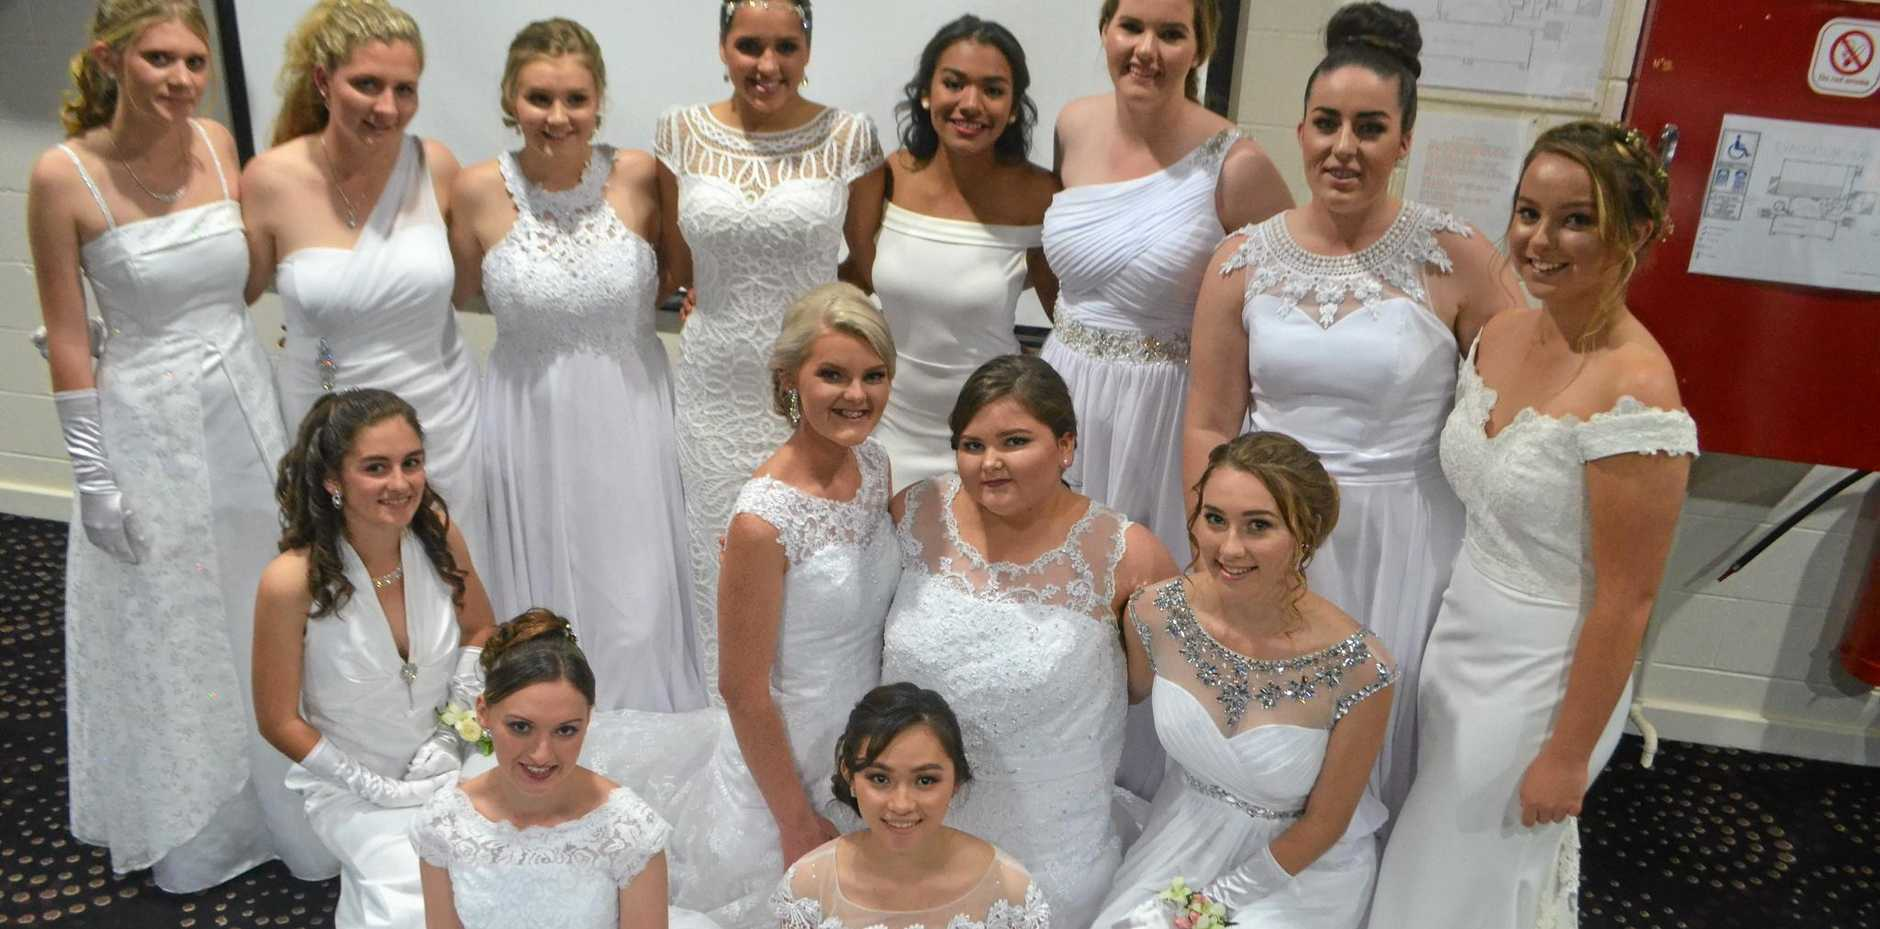 All the debs from Charleville High School are looking magnificent.